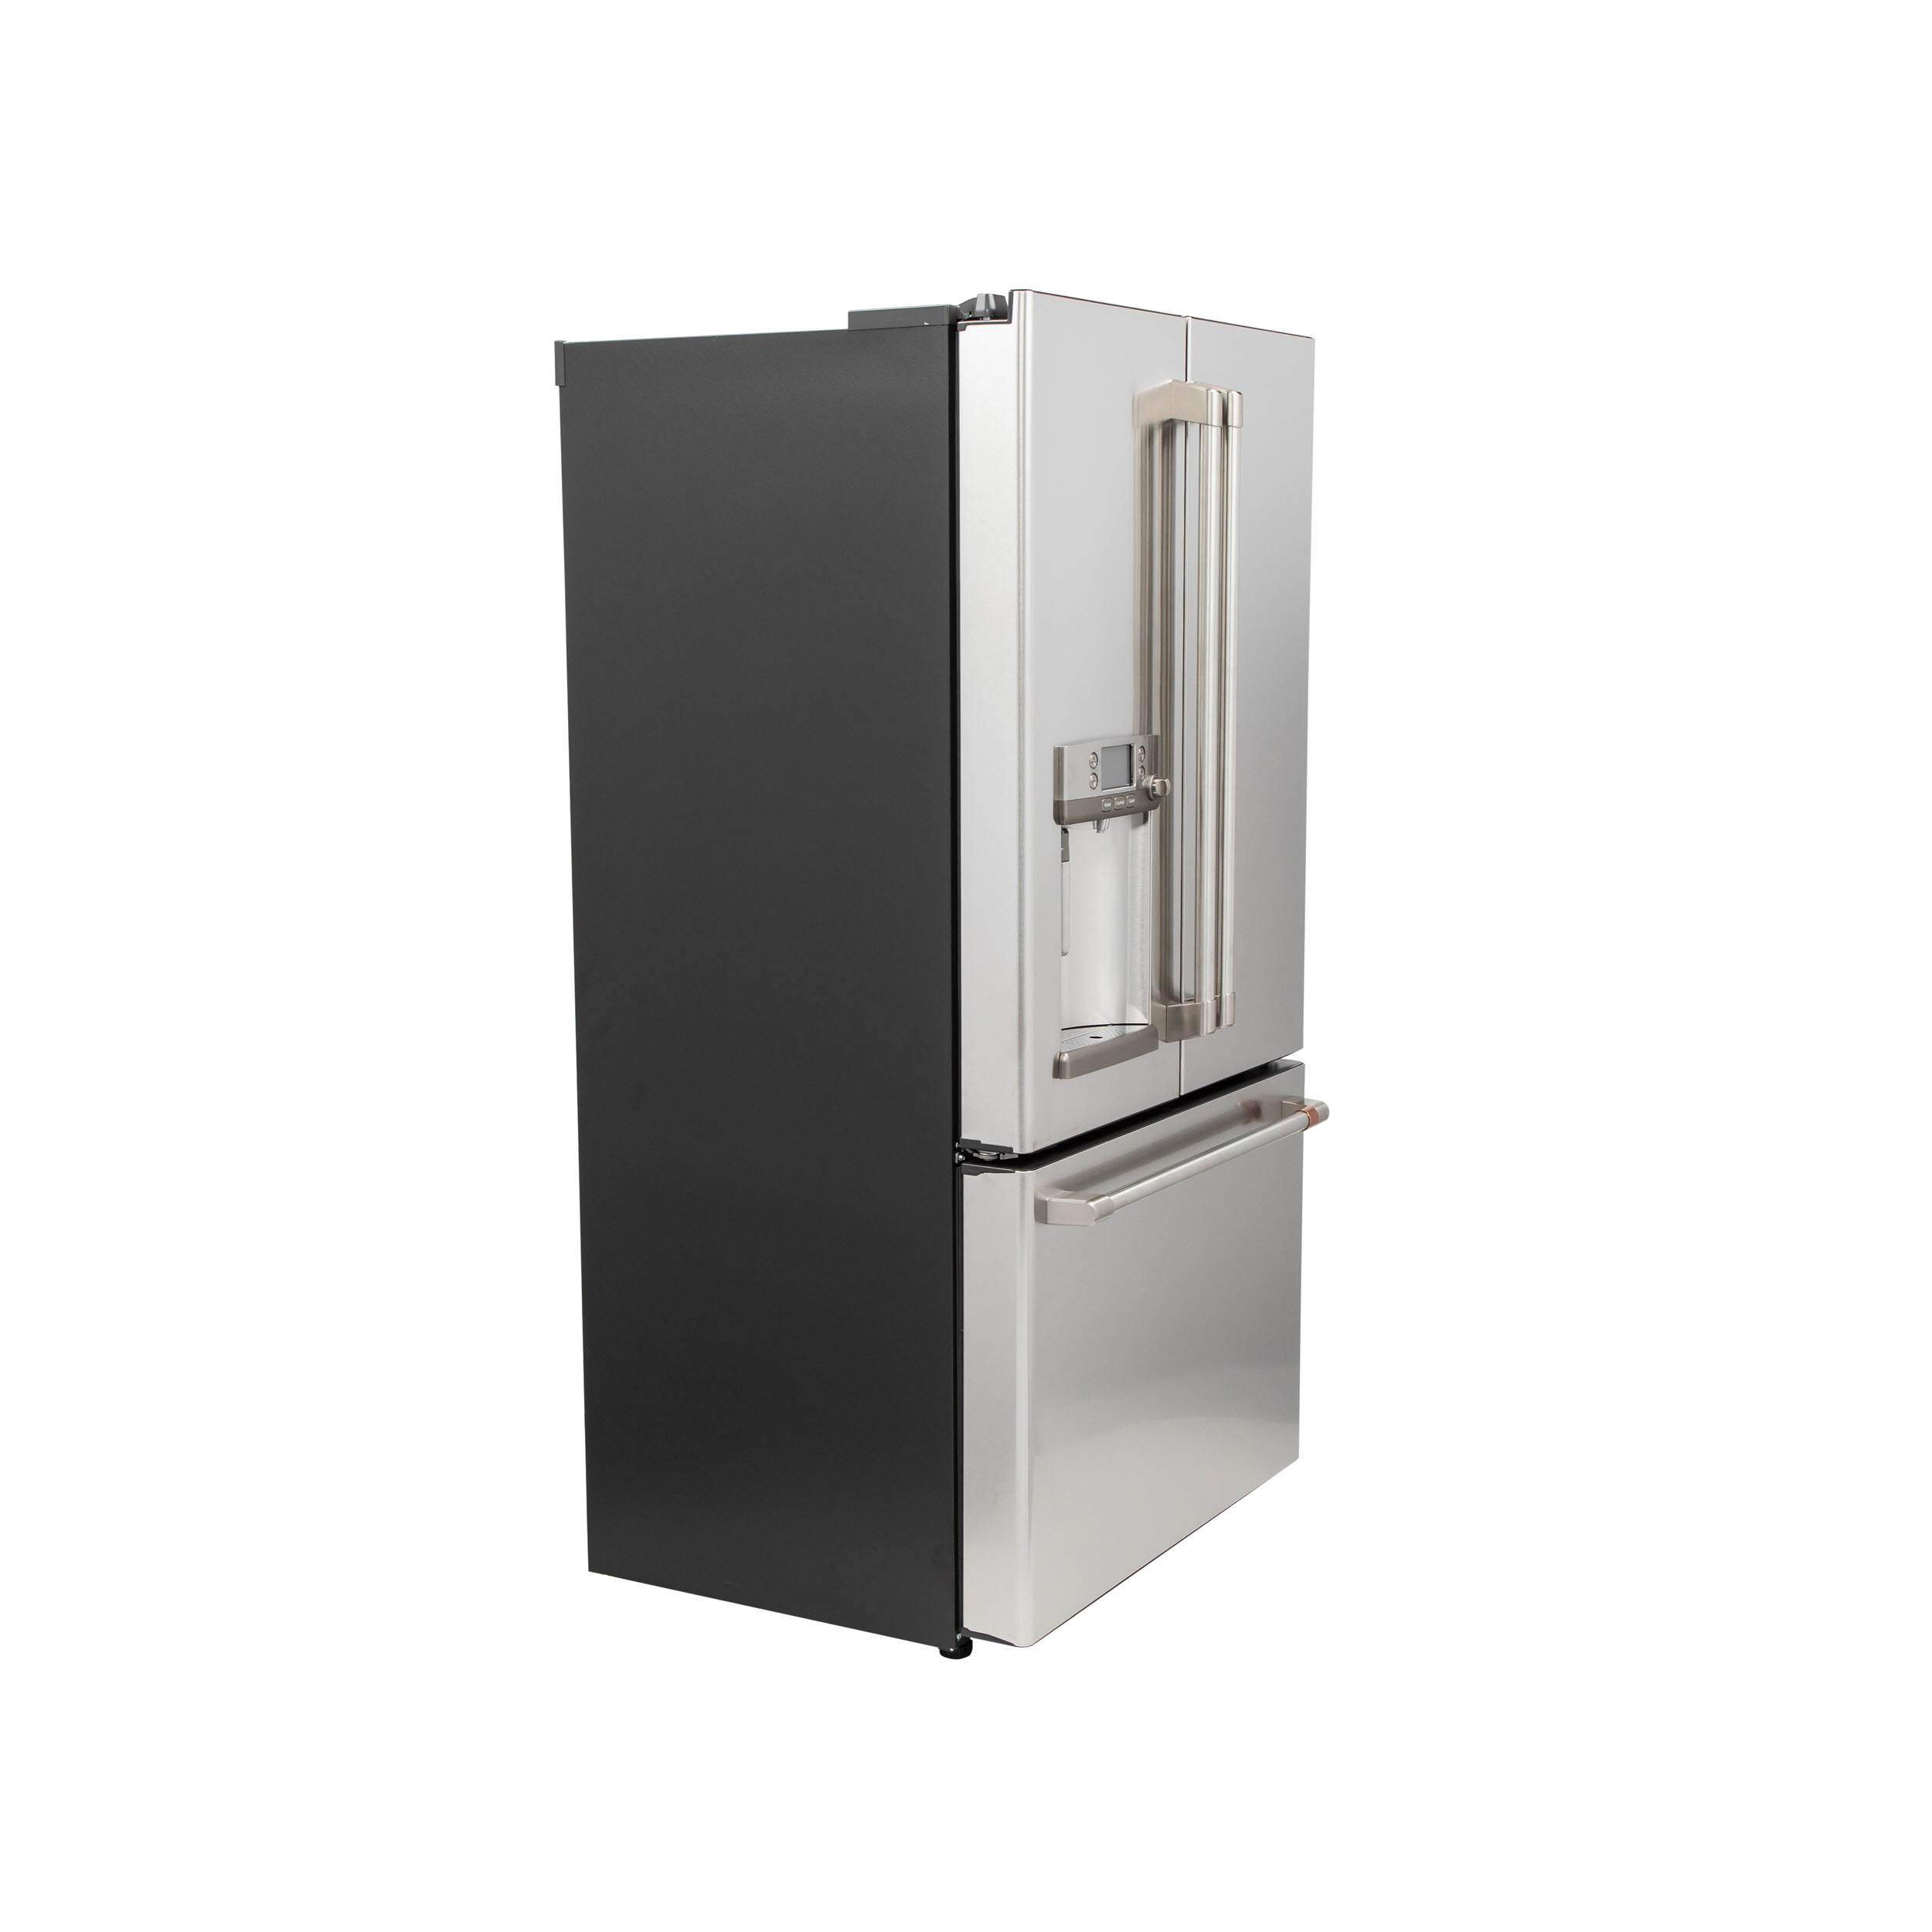 Model: CYE22TP2MS1 | Cafe Café™ ENERGY STAR® 22.1 Cu. Ft. Smart Counter-Depth French-Door Refrigerator with Hot Water Dispenser